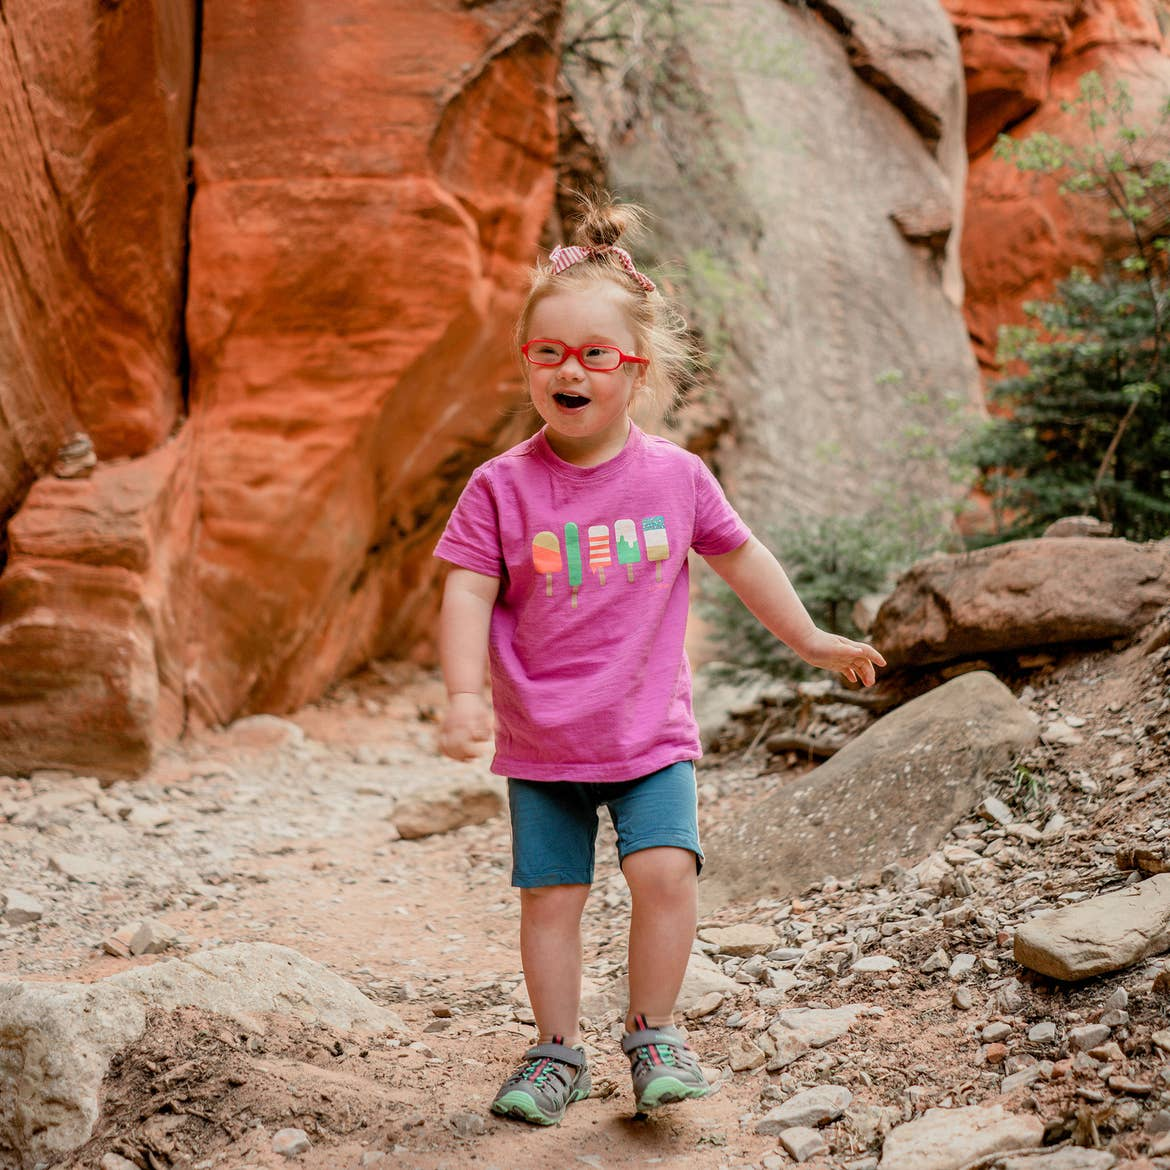 Featured Contributor, Melody Forsyth's daughter, Ruby walks in front of a rock formation in a pink t-shirt and shorts.